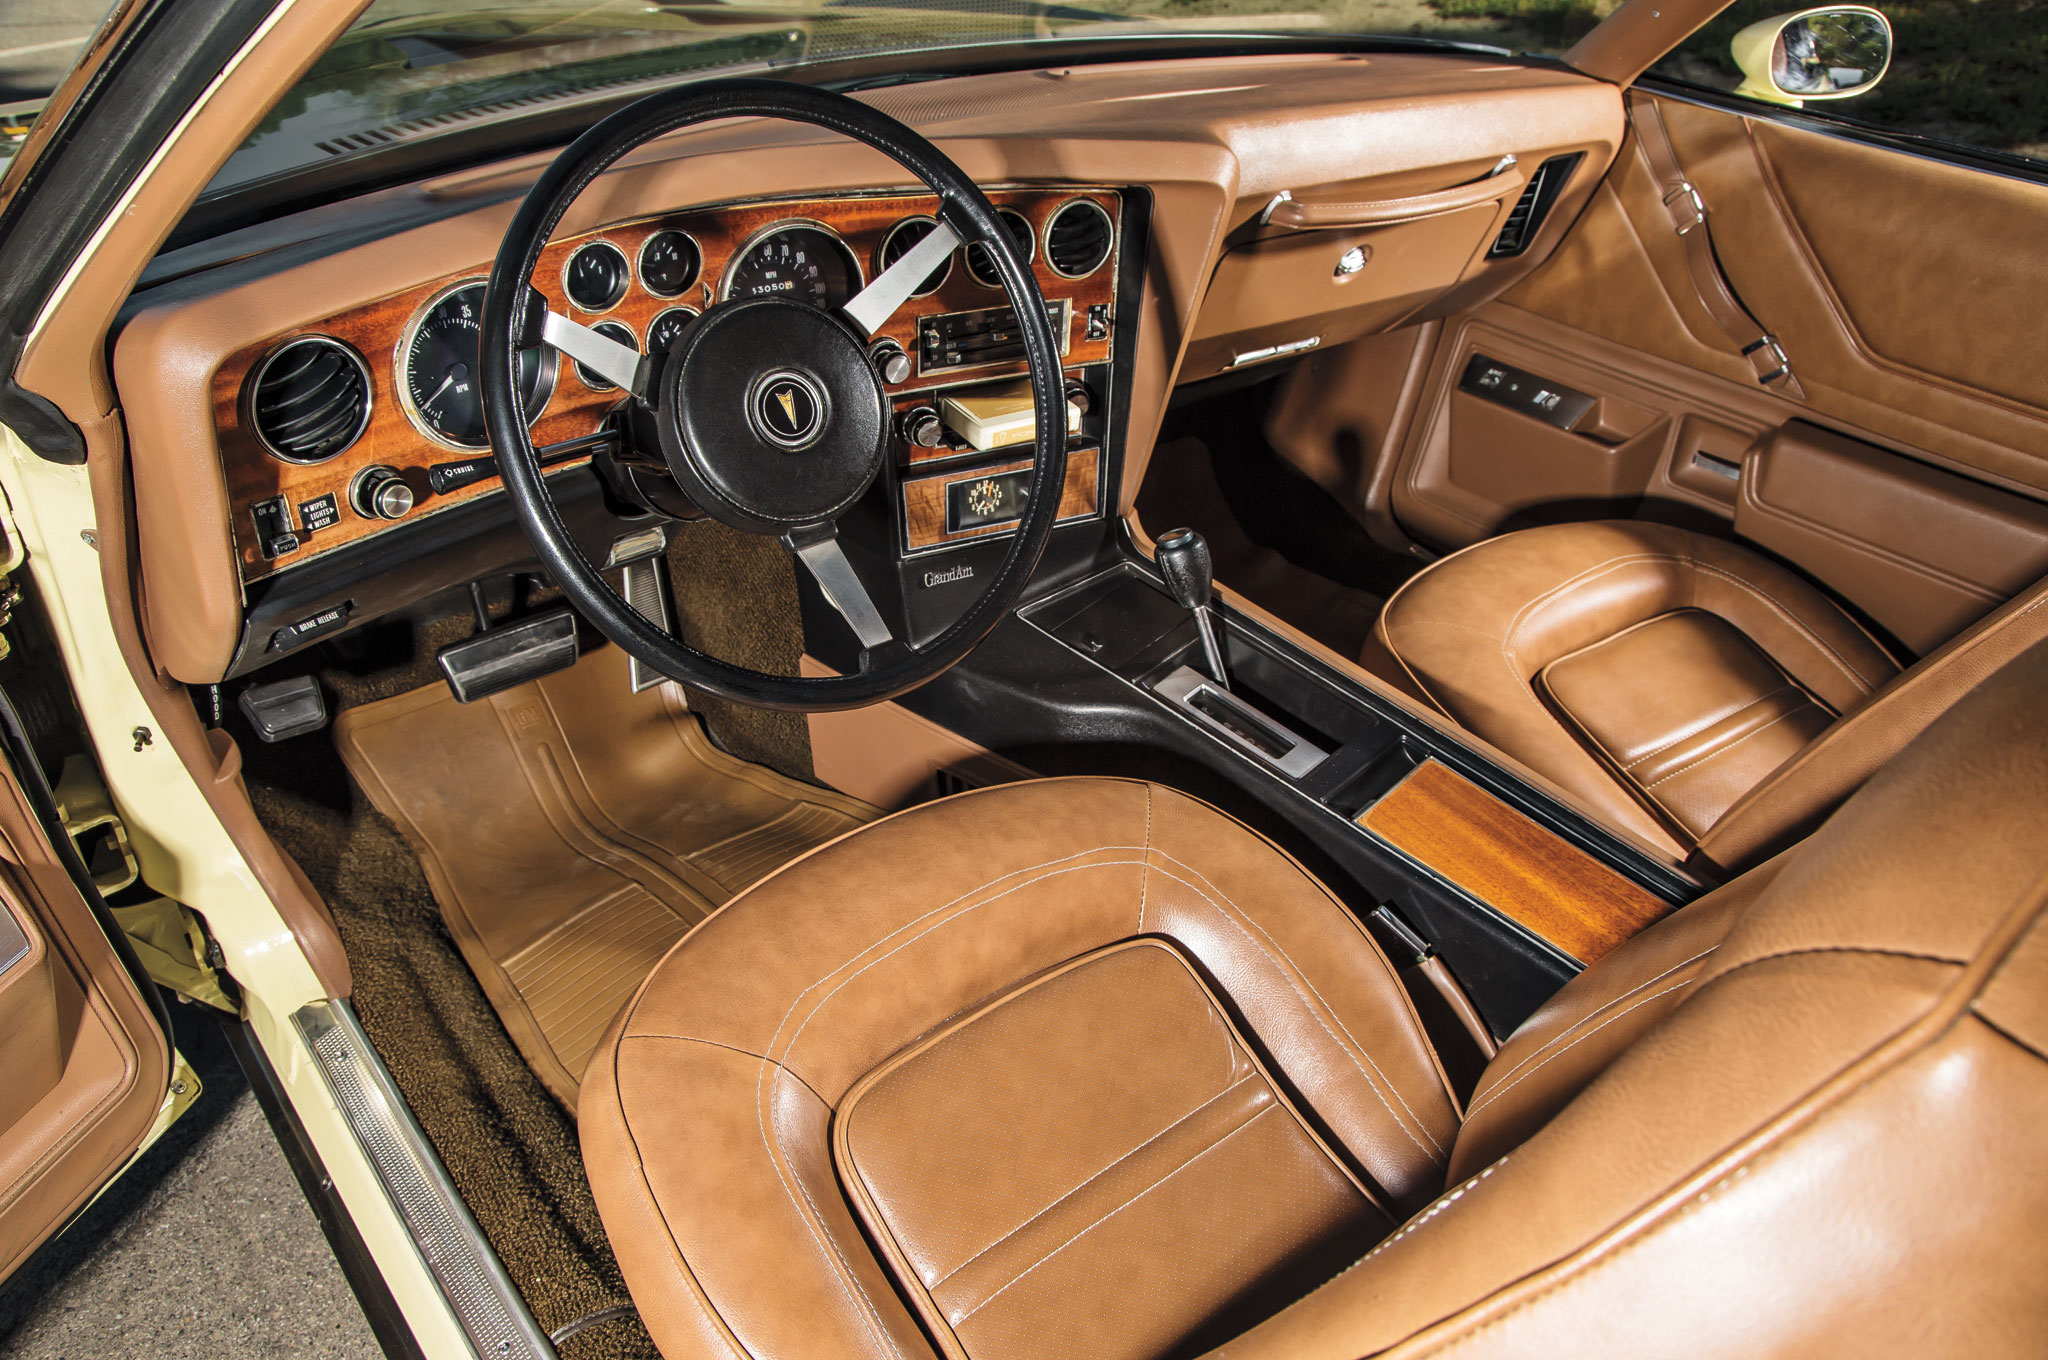 The Grand Am's glamorous interior heralded the start of the era of the personal luxury car.